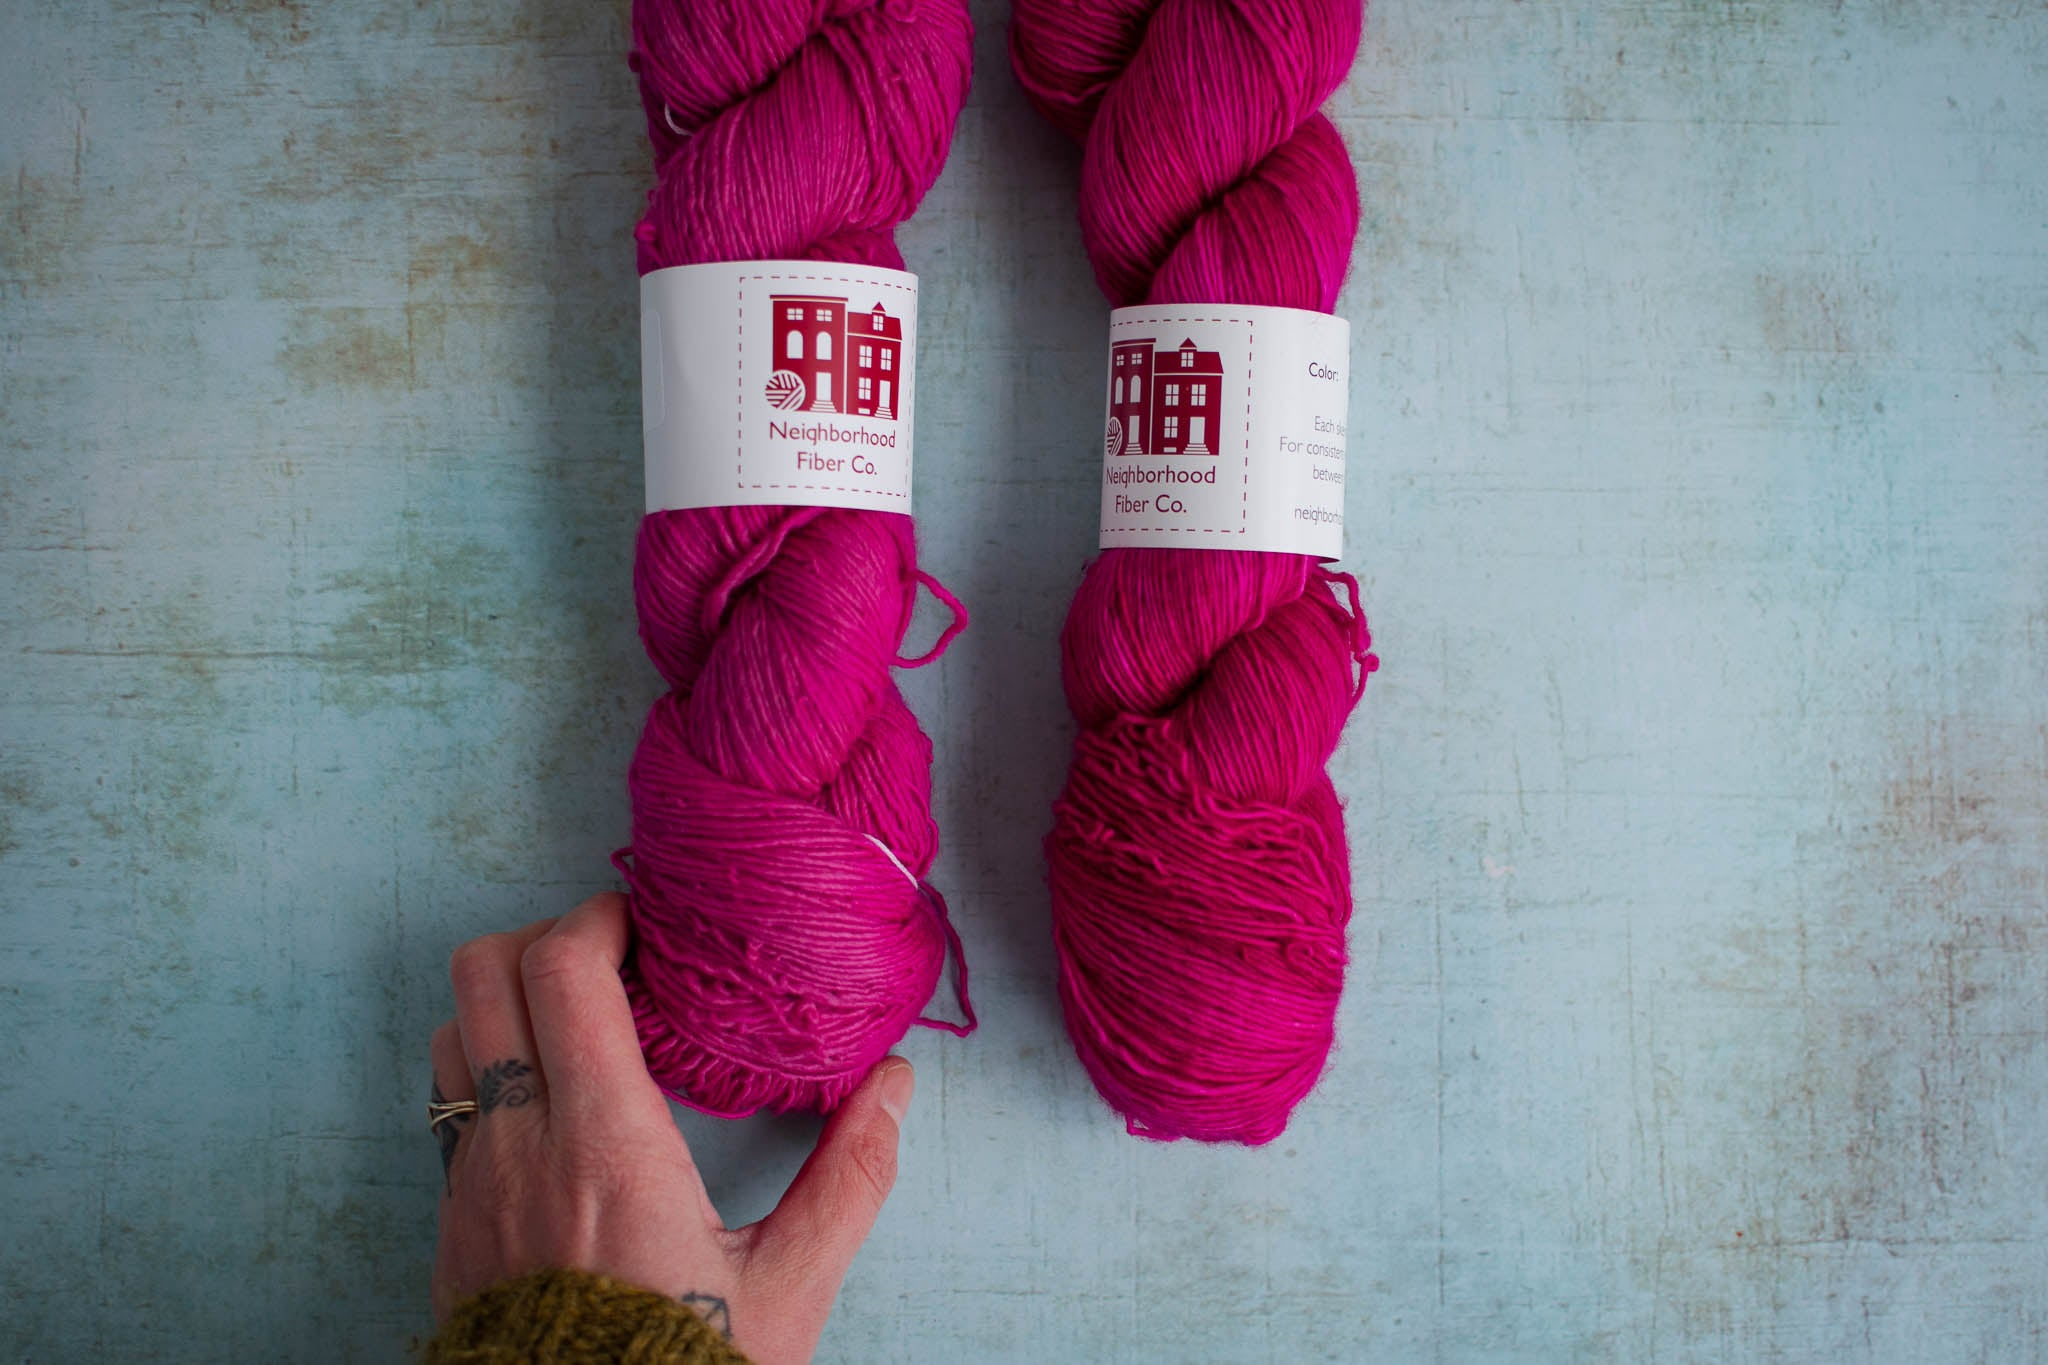 Two skeins of pink yarn, with a hand touching the bottom of the skein on the left. The right skein is darker and more saturated.